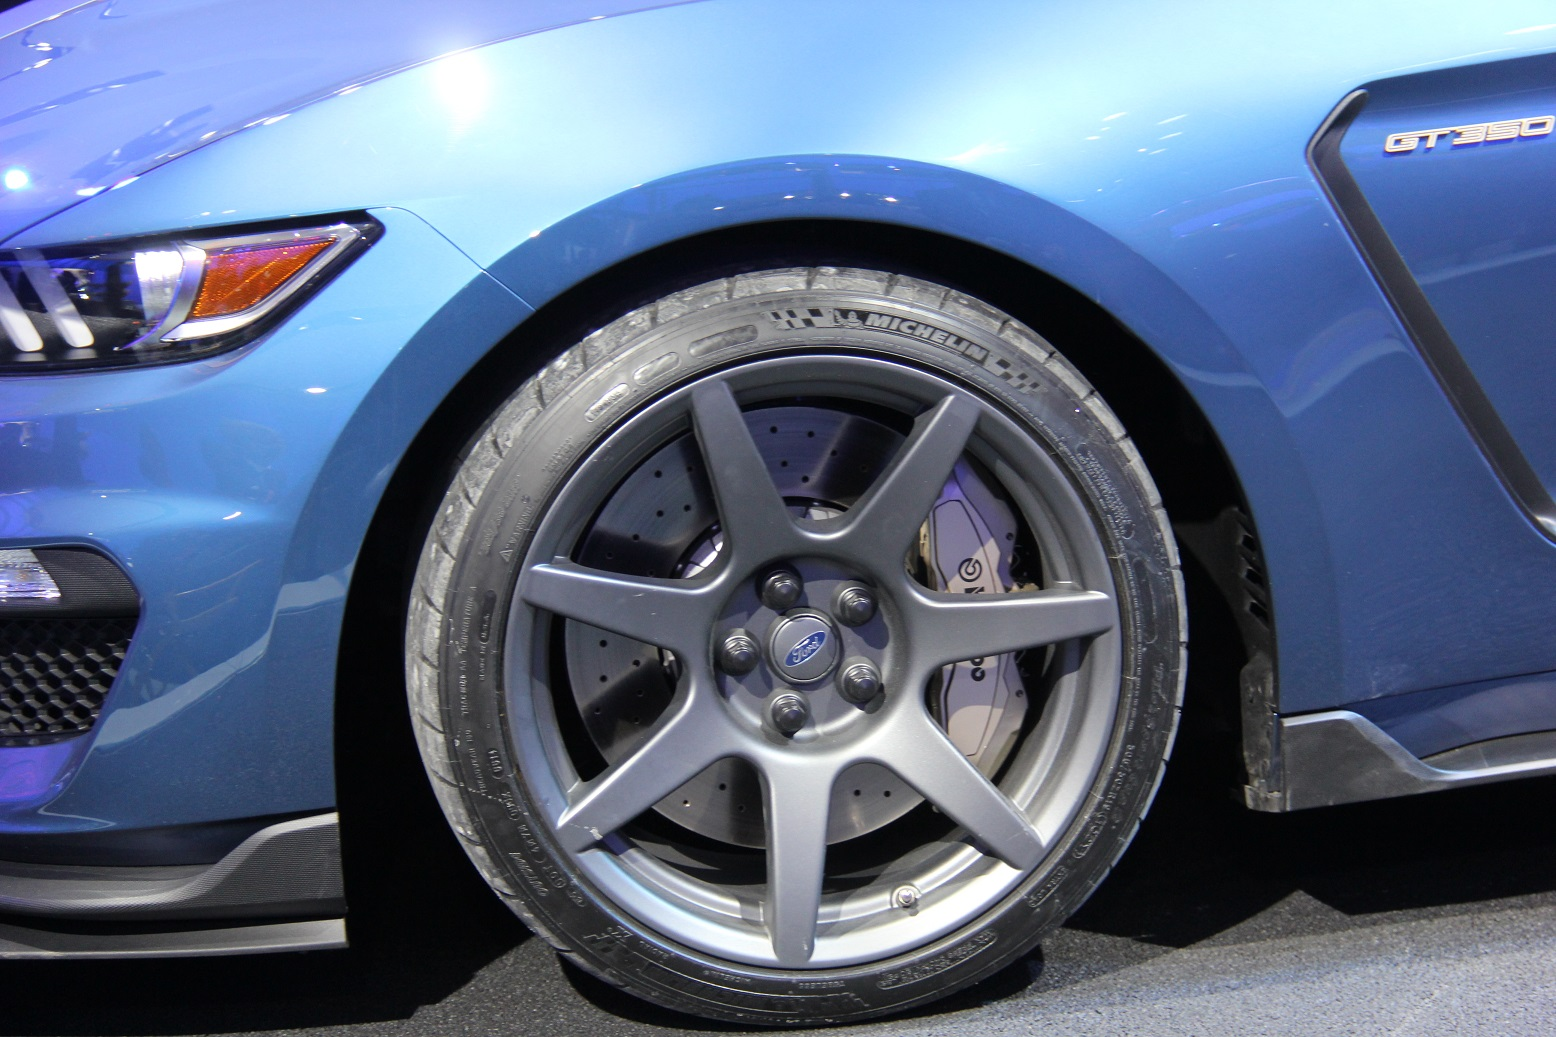 2016 Ford Mustang Shelby Gt350r Velg And Wheel (Photo 7 of 47)